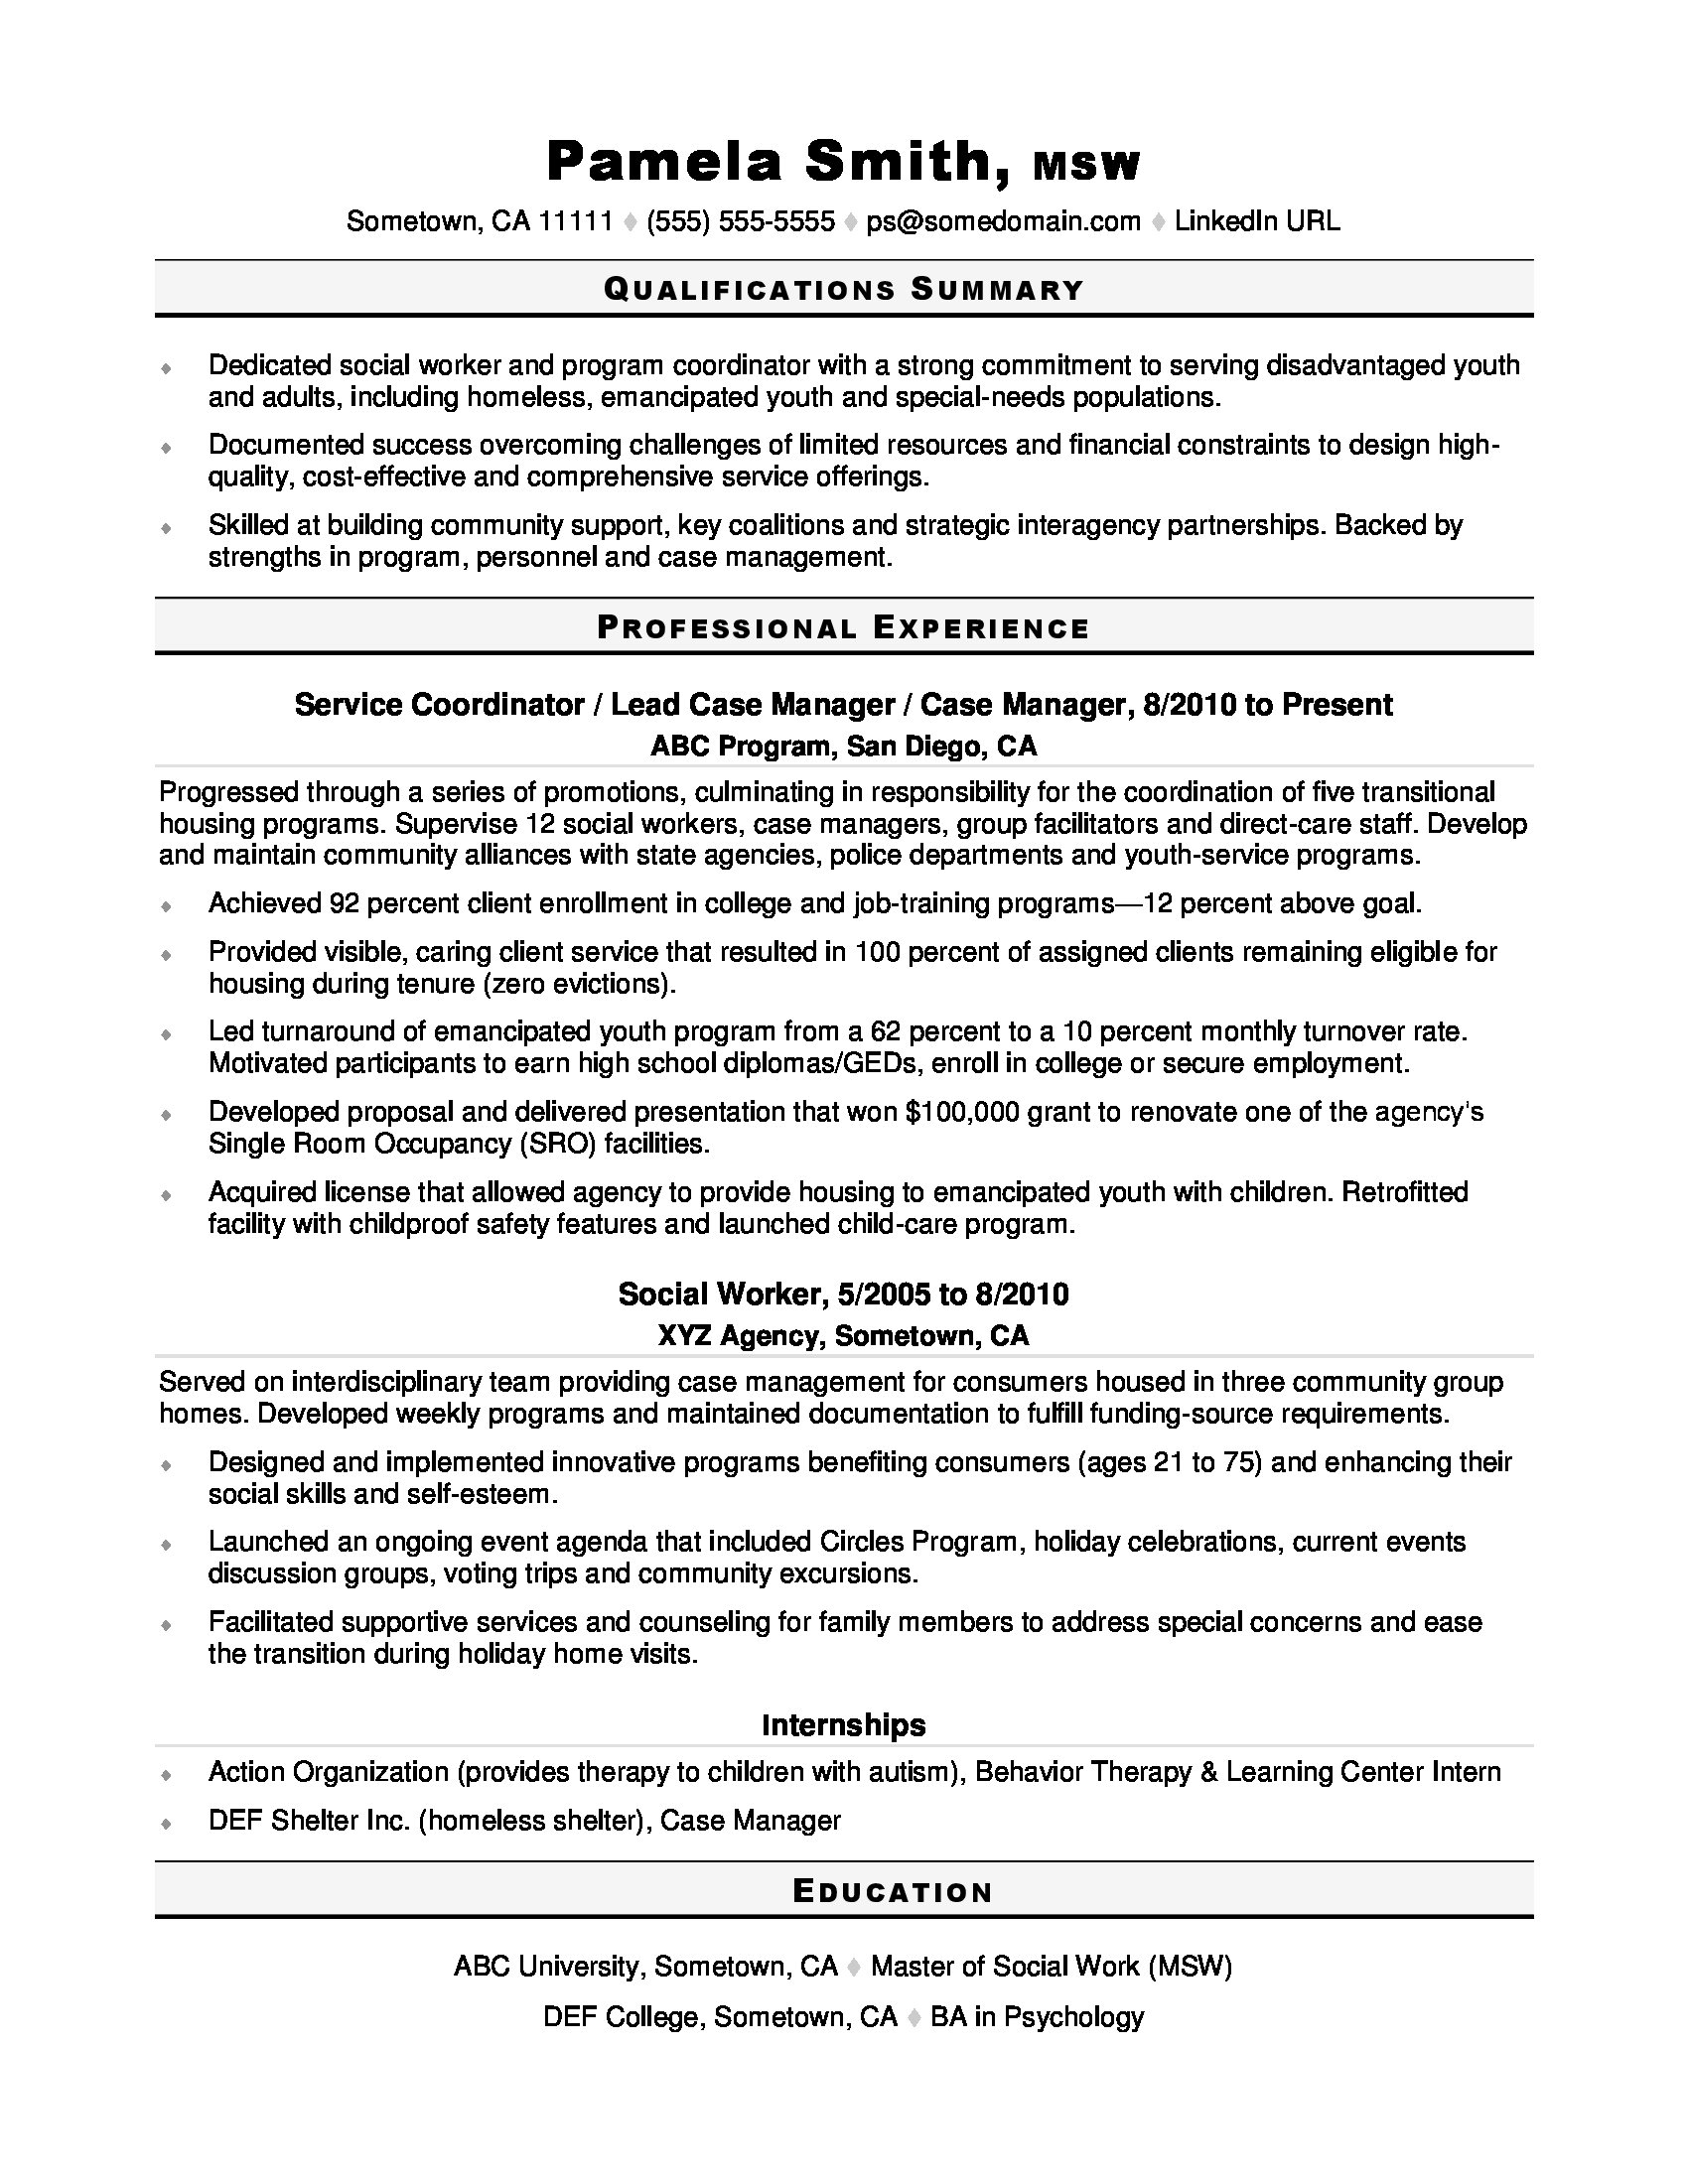 social worker resume sample monster youth program coordinator accounting mail for sending Resume Youth Program Coordinator Resume